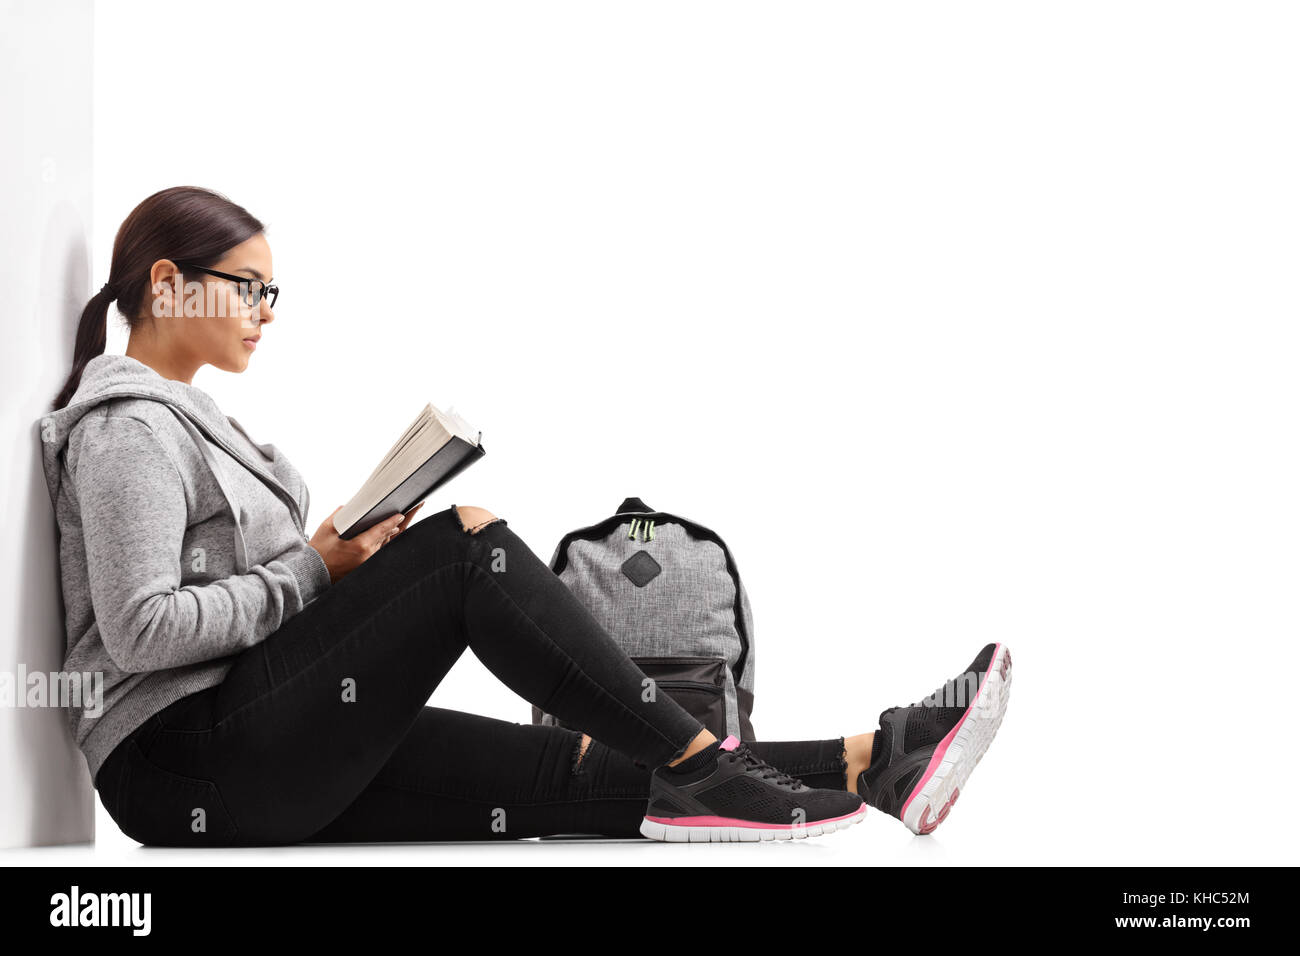 Female Teenage Student Reading A Book And Leaning Against A